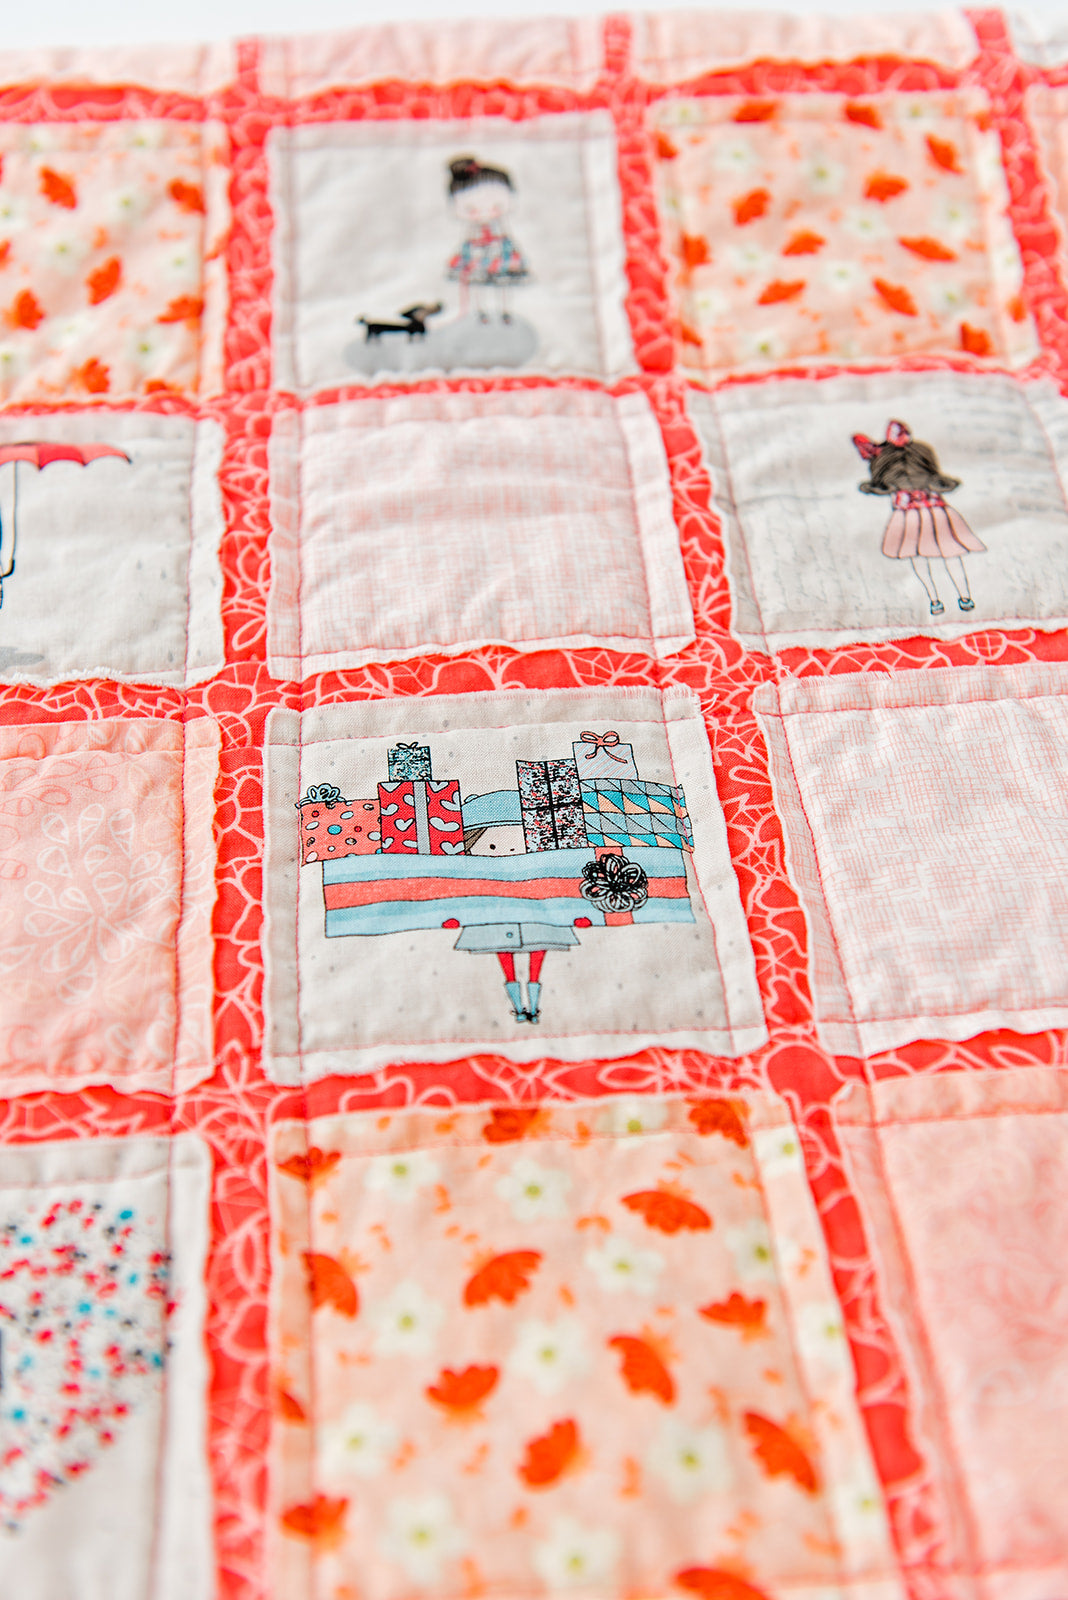 beautiful-handmade-baby-quilt-coral-mint-hot-pink-blanket-from-sugar-owl-design